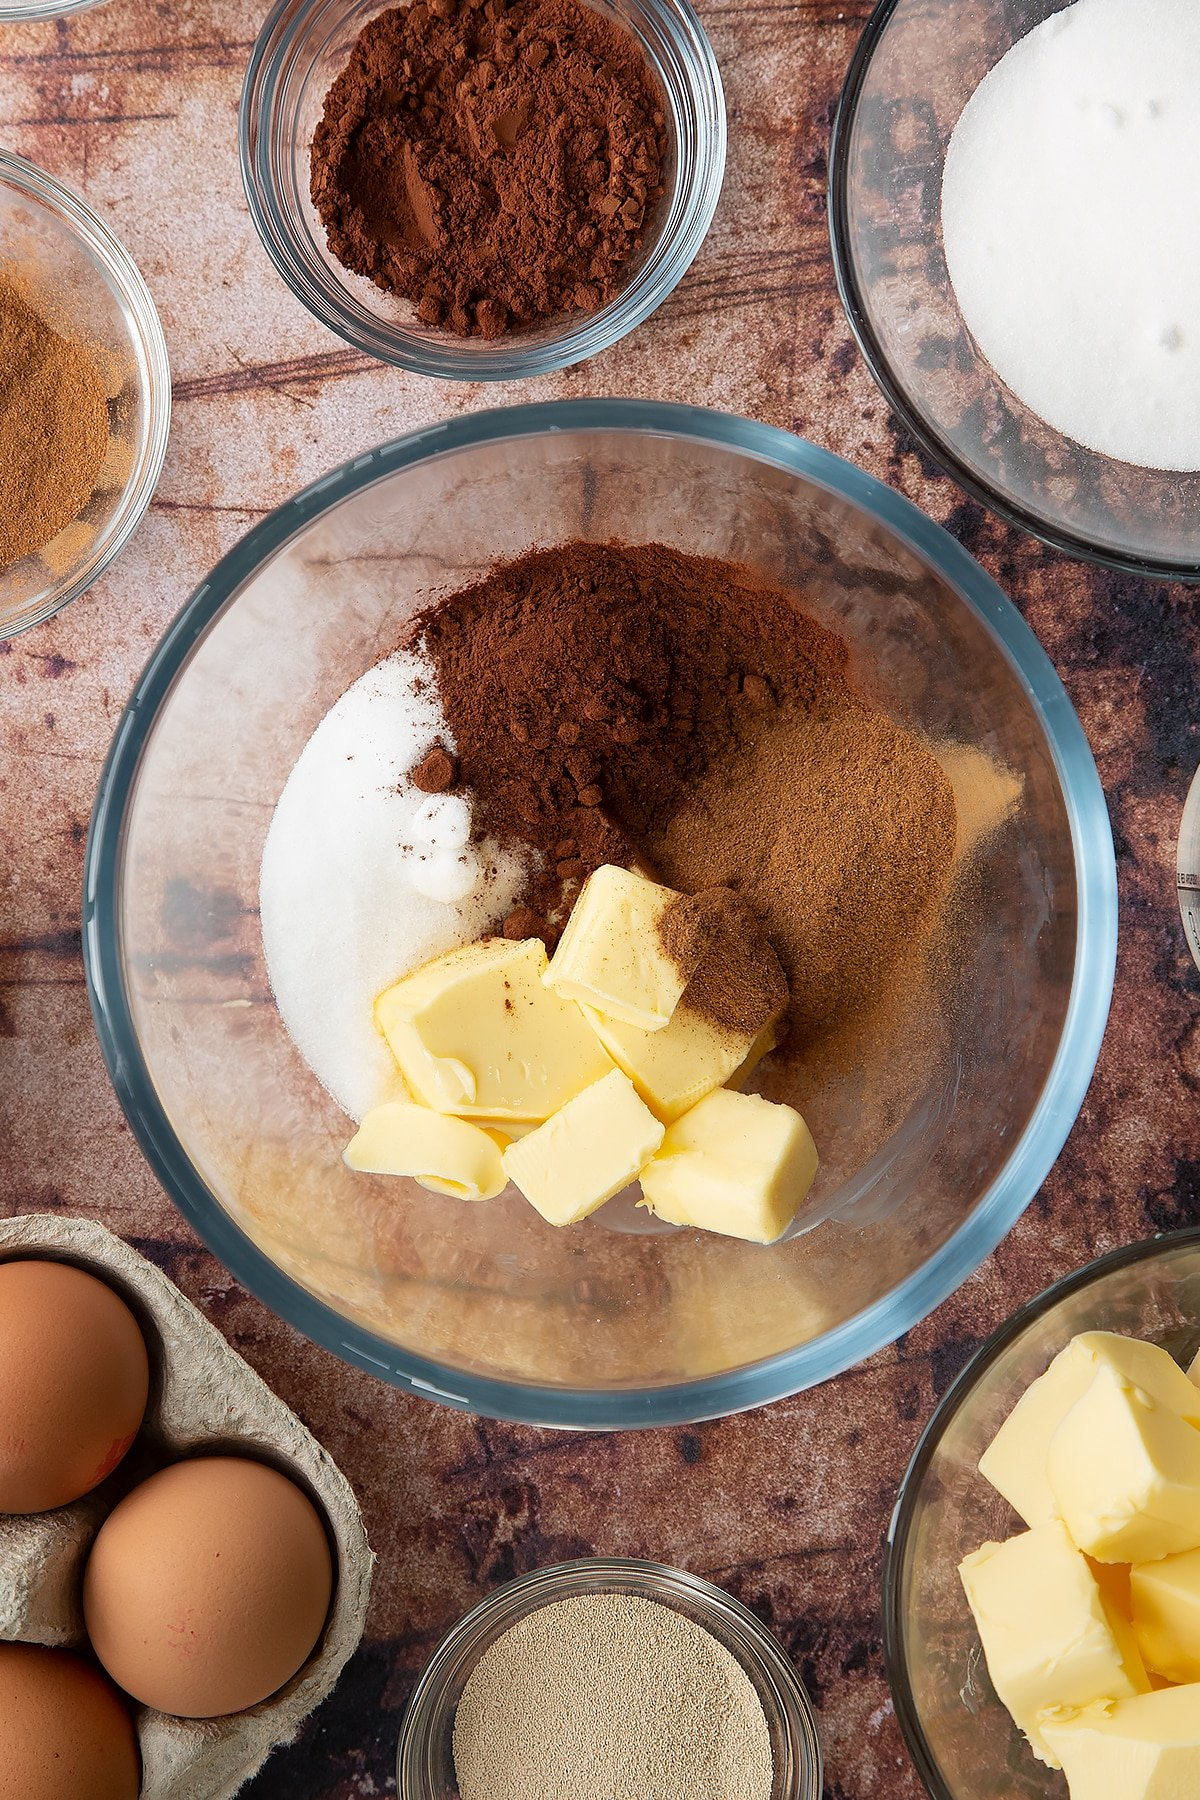 Over head shot of cinnamon, sugar, butter and cocoa in a large clear bowl